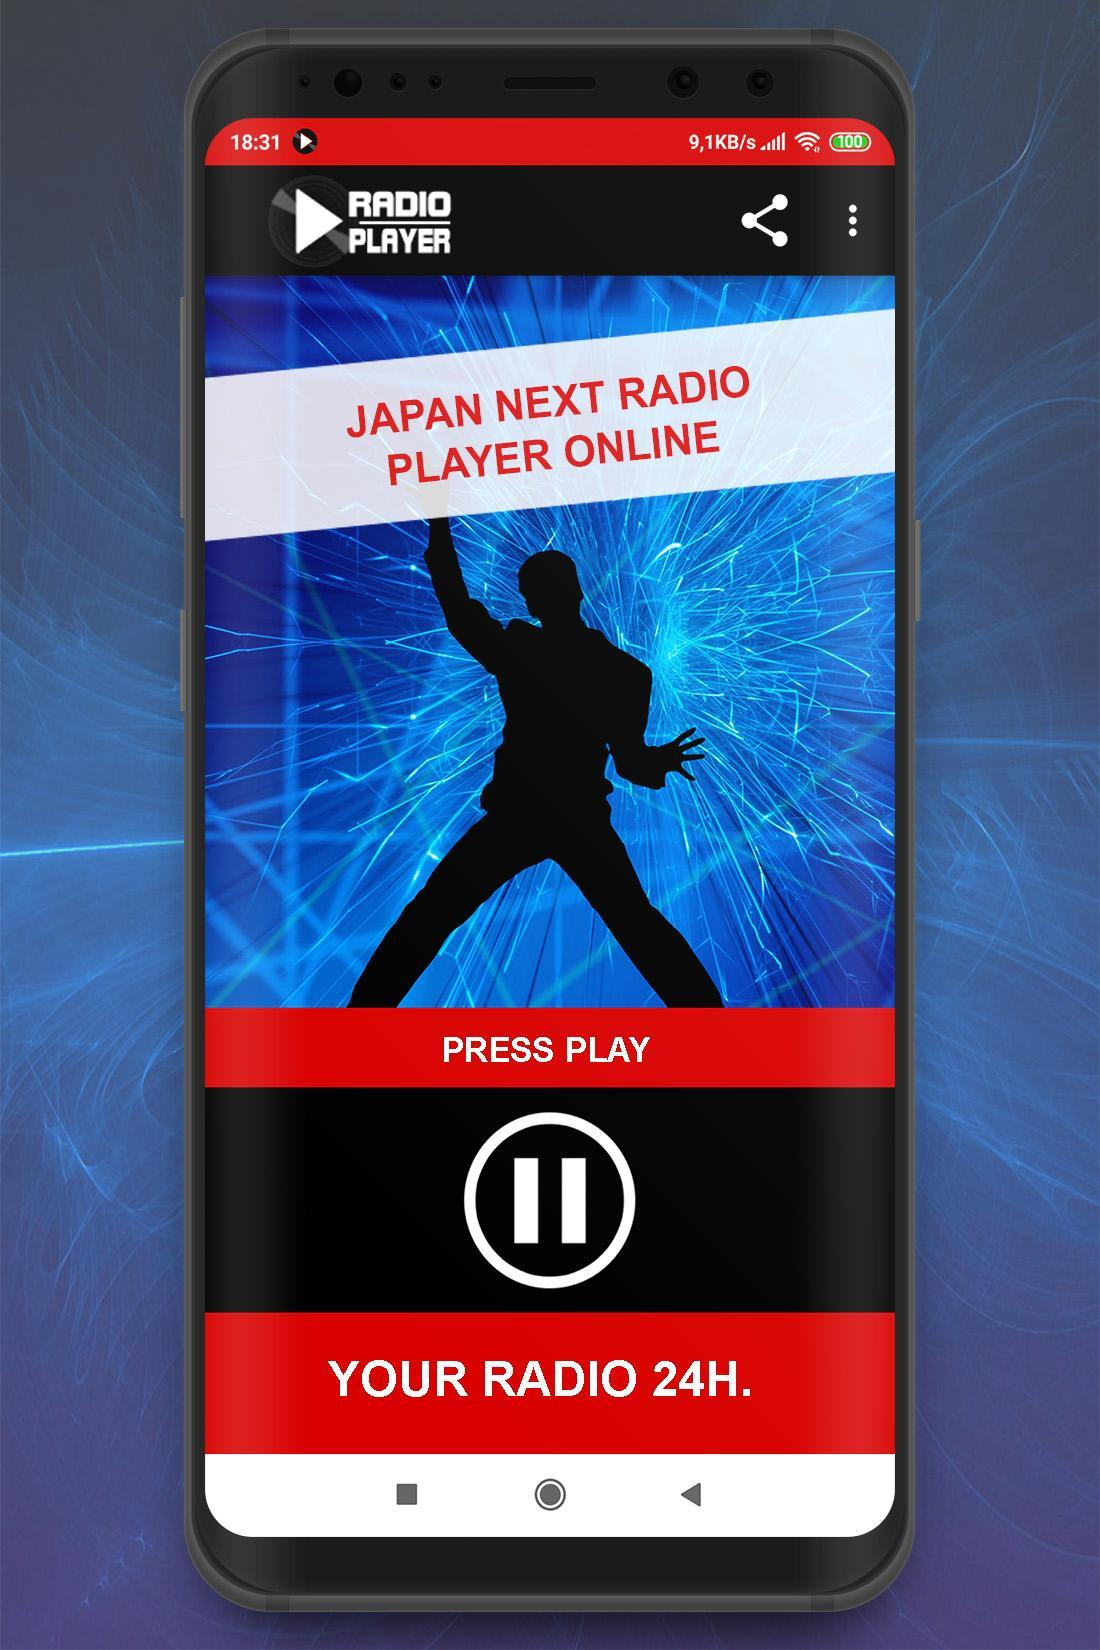 Live Japan Next Radio Player Online App for Android - APK